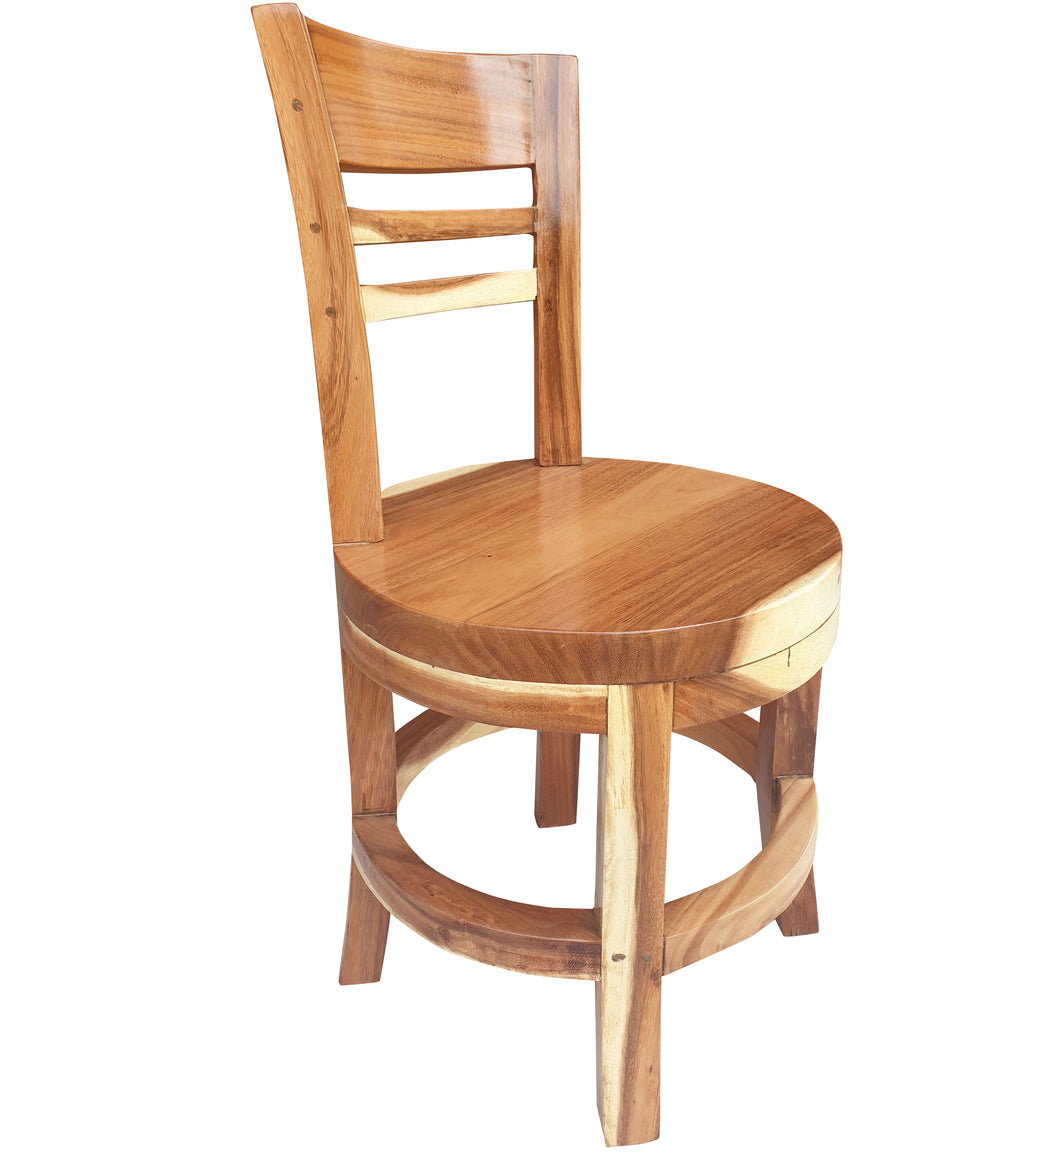 Suar Olympia Live Edge Dining Chair - La Place USA Furniture Outlet